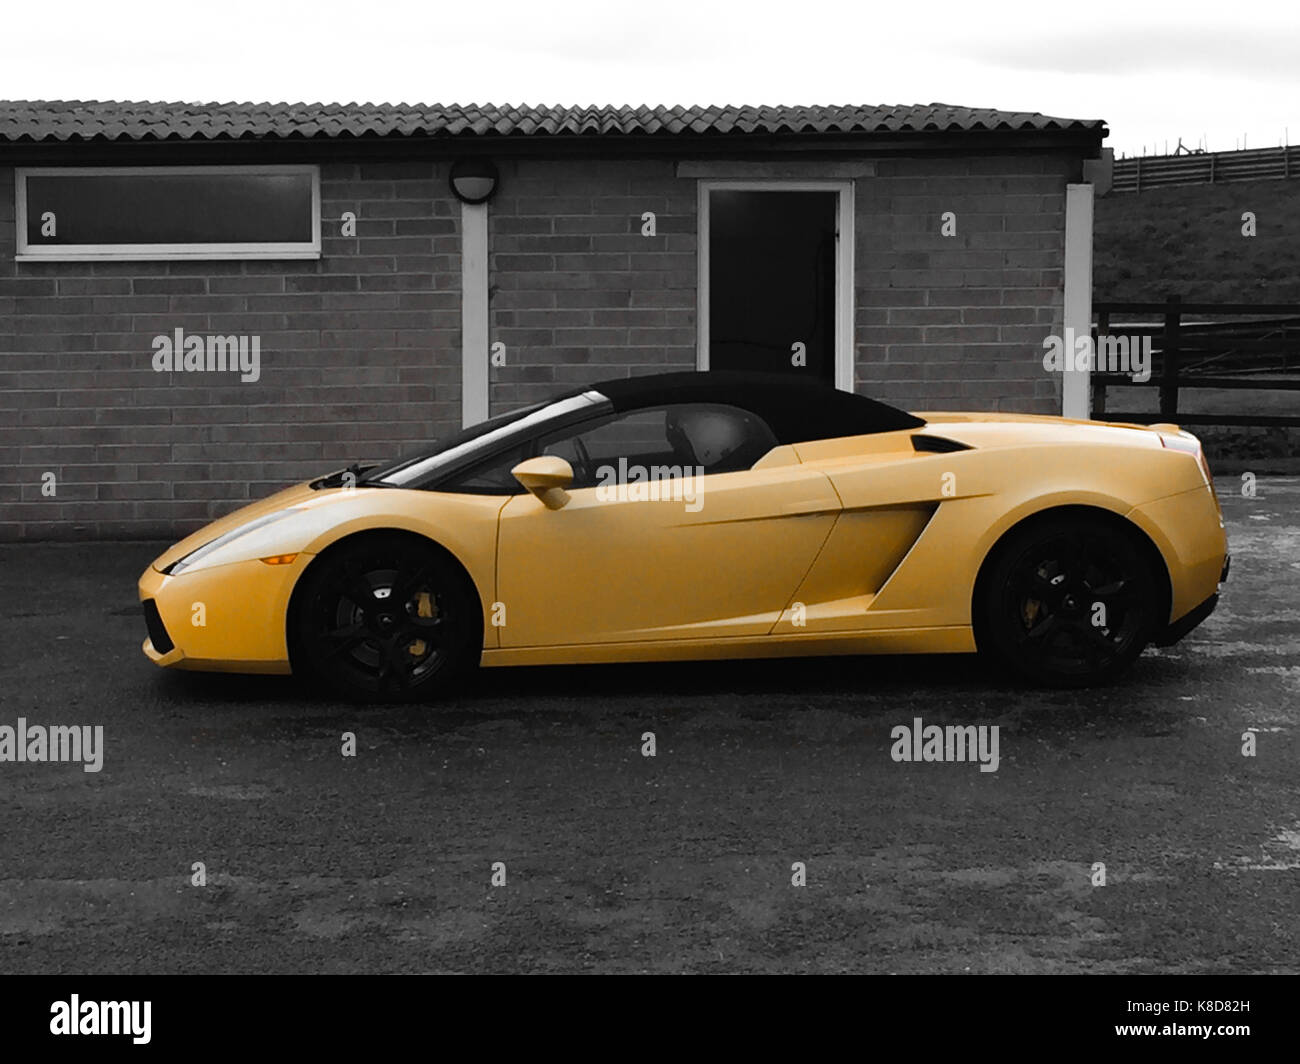 Lamborghini Gallardo In Yellow With A Black U0026 White Background